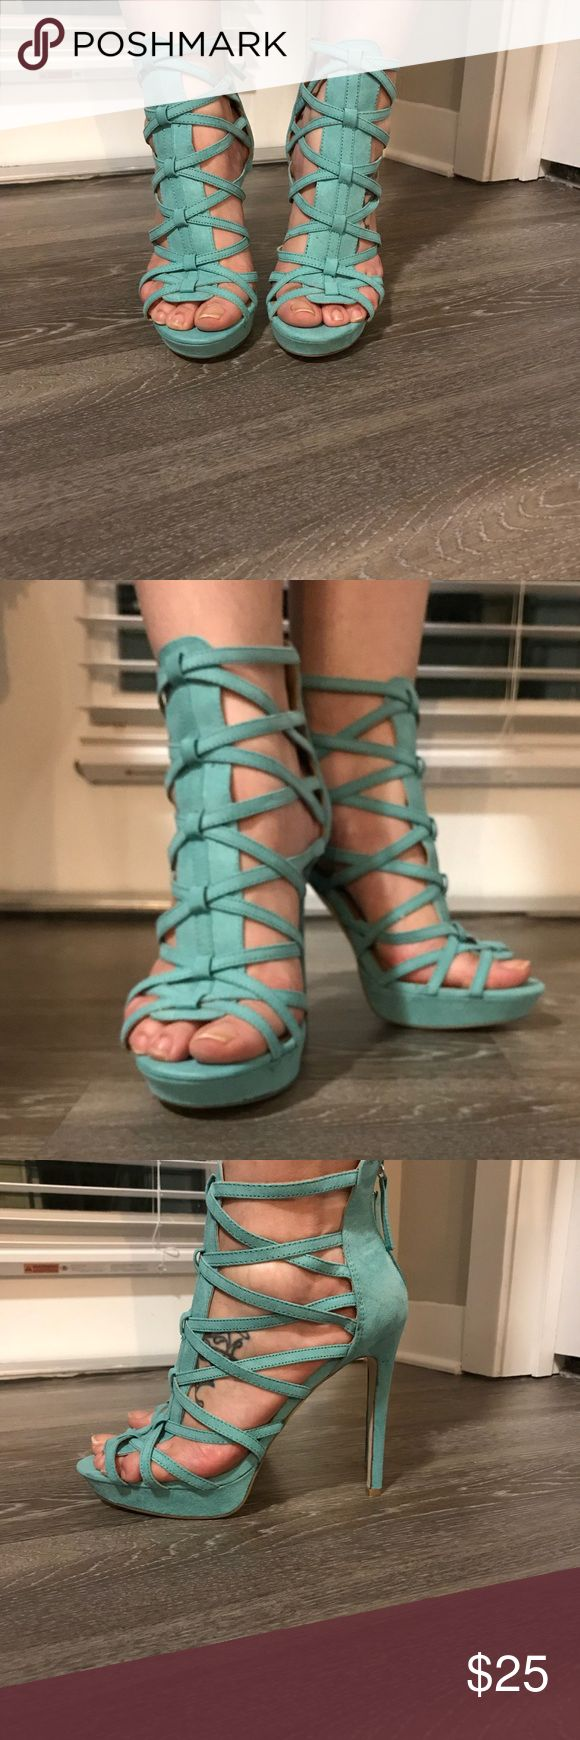 """Mint green heels Brand new Feminine faux suede crisscross straps make their way up your foot and stop at the ankle,Zip back. 5"""" heels and 1"""" platform  Fit: True to Size JustFab Shoes Heels"""